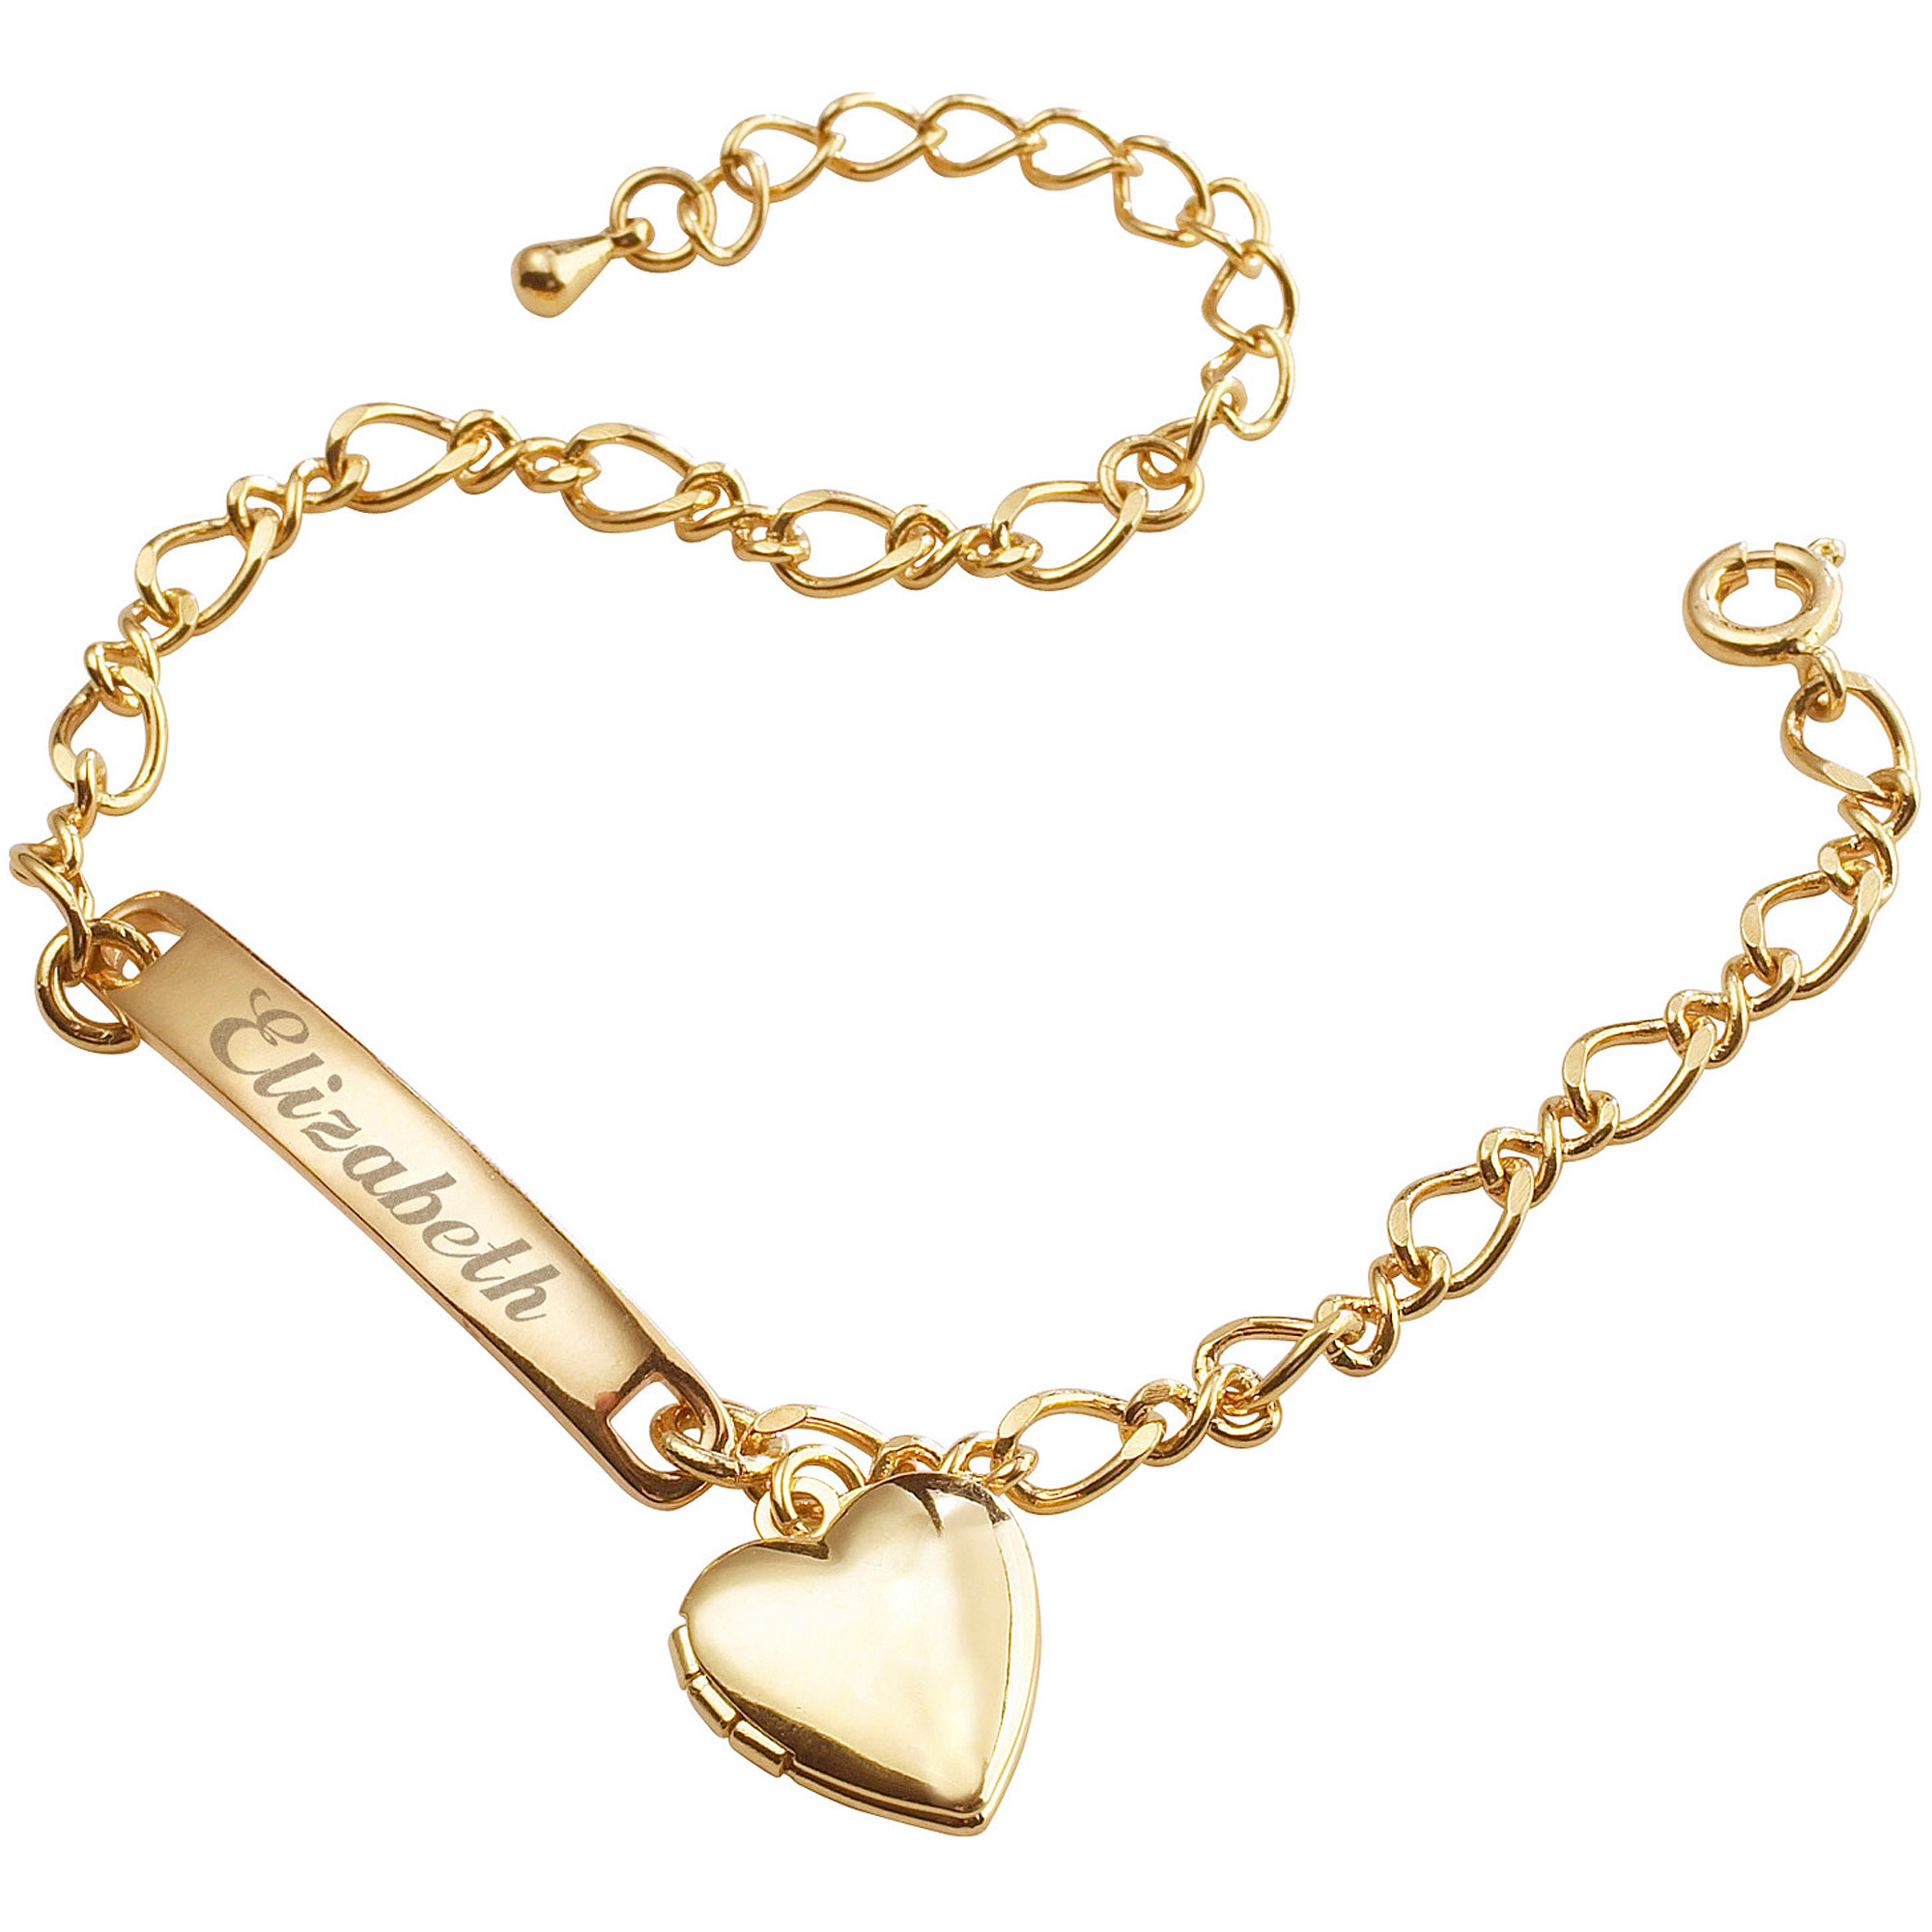 Personalized 14kt Gold-Plated Girls' Heart Charm Bracelet